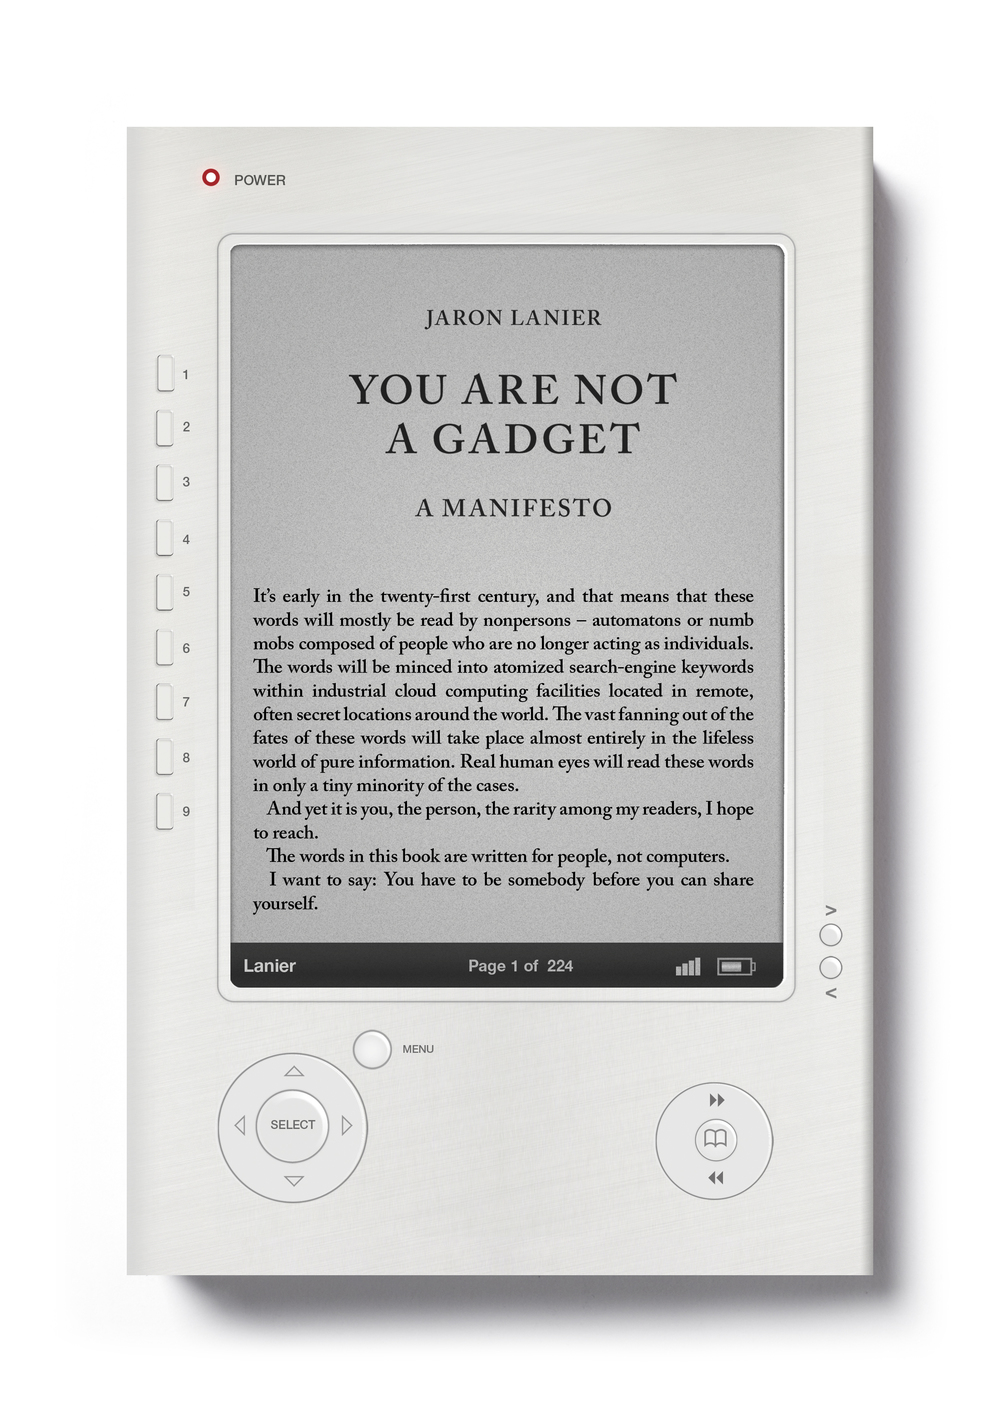 You Are Not A Gadget by Jaron Lanier - Art Direction: Jim Stoddart Design: Olly Moss